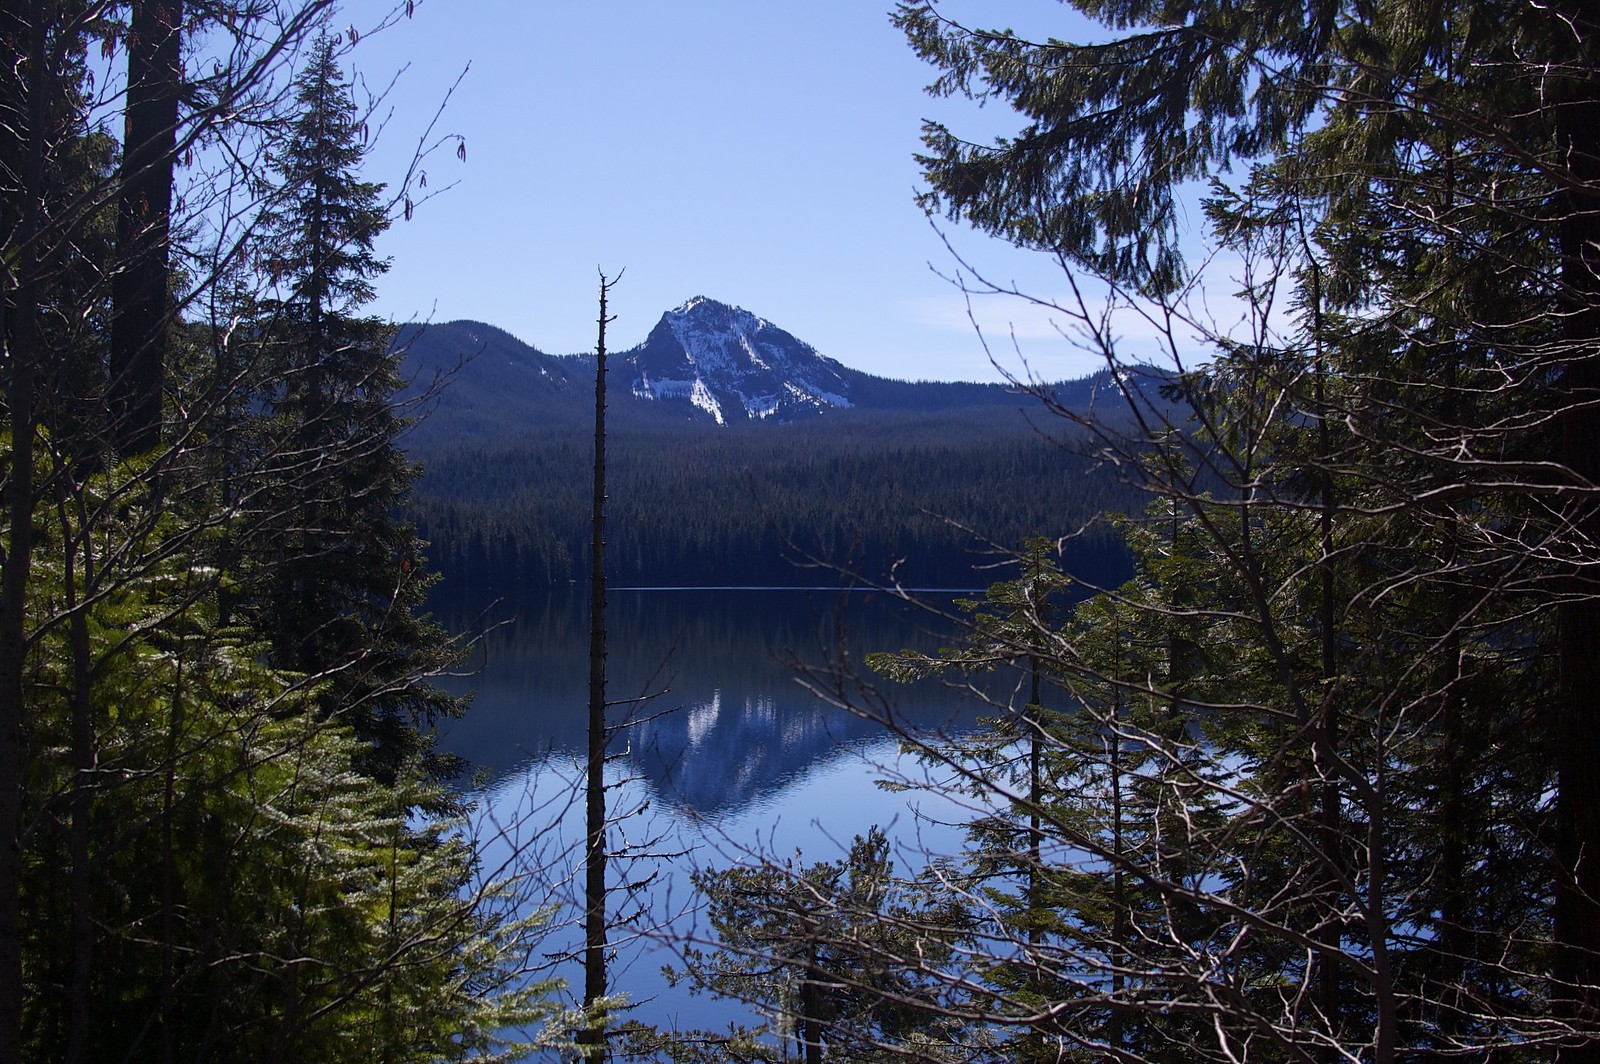 Mountain over a lake along highway 58